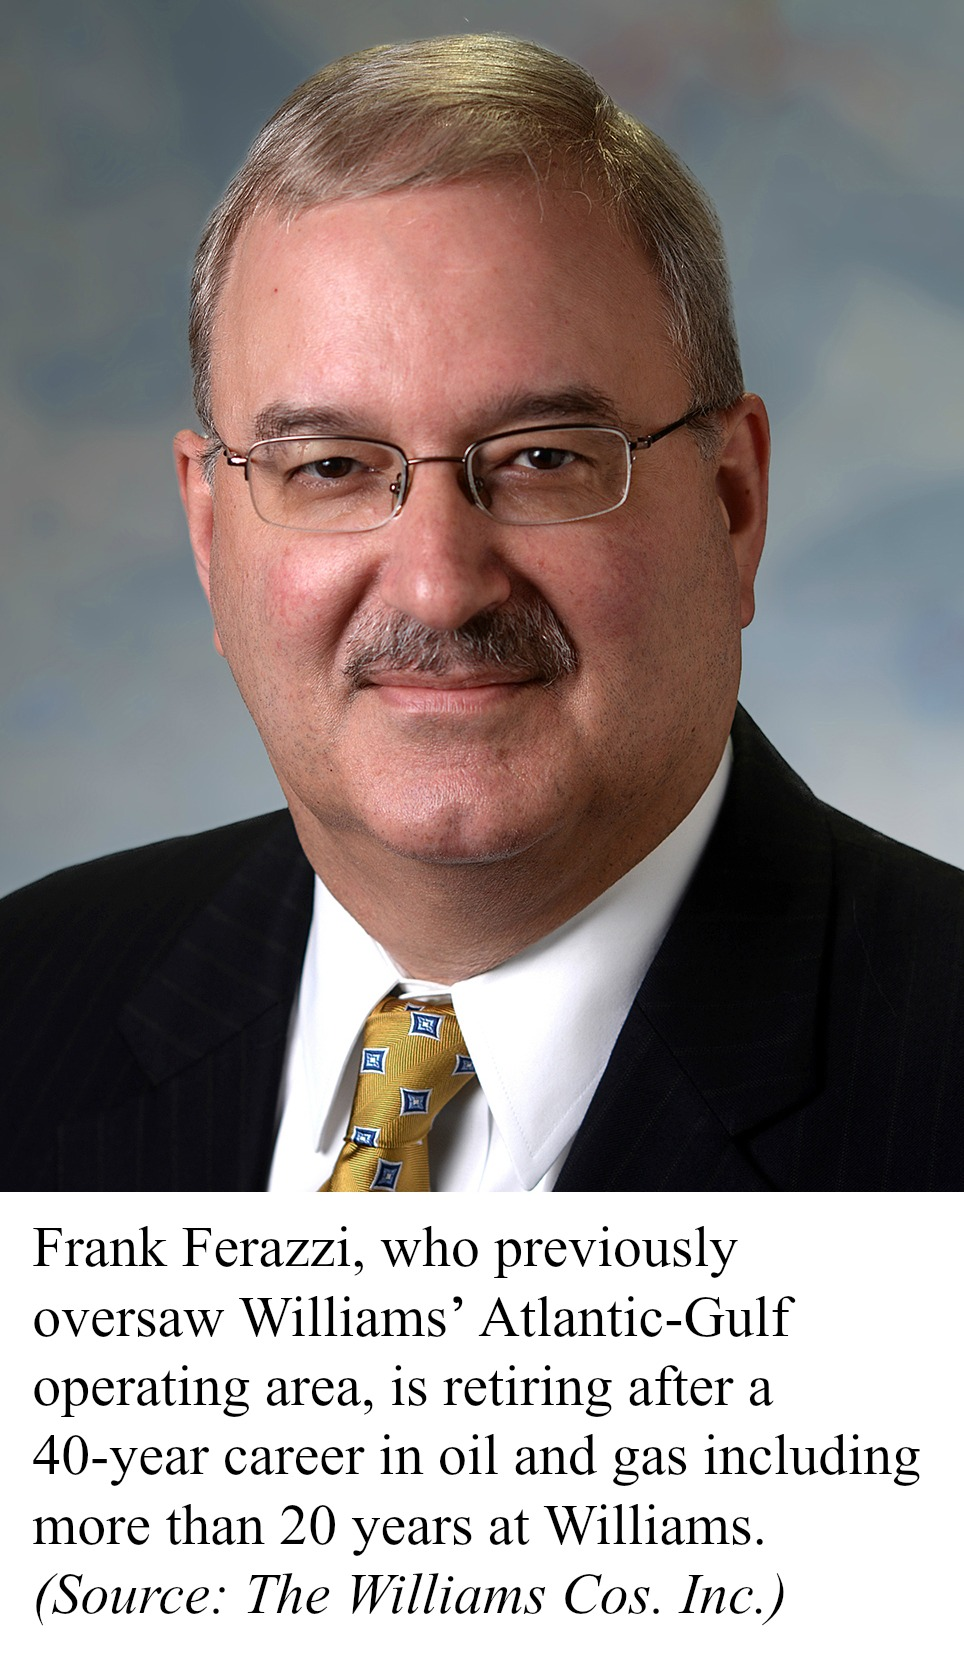 Frank Ferazzi, who previously oversaw Williams' Atlantic-Gulf operating area, is retiring after a 40-year career in oil and gas including more than 20 years at Williams.